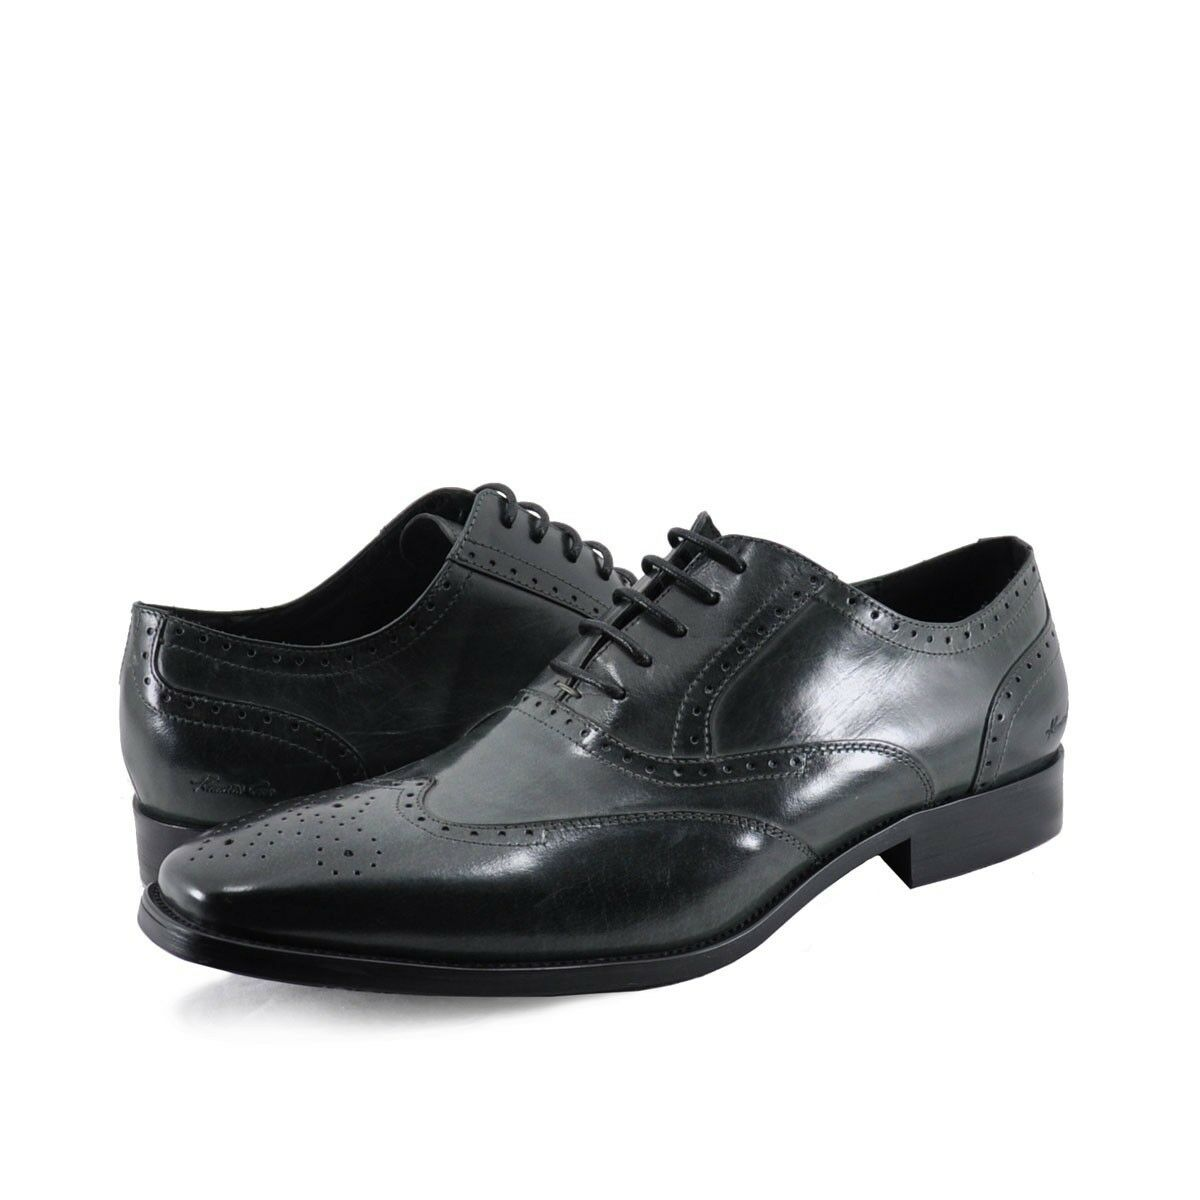 Men's shoes Kenneth Cole New York Locked Down Leather Wingtip Oxfords Grey New